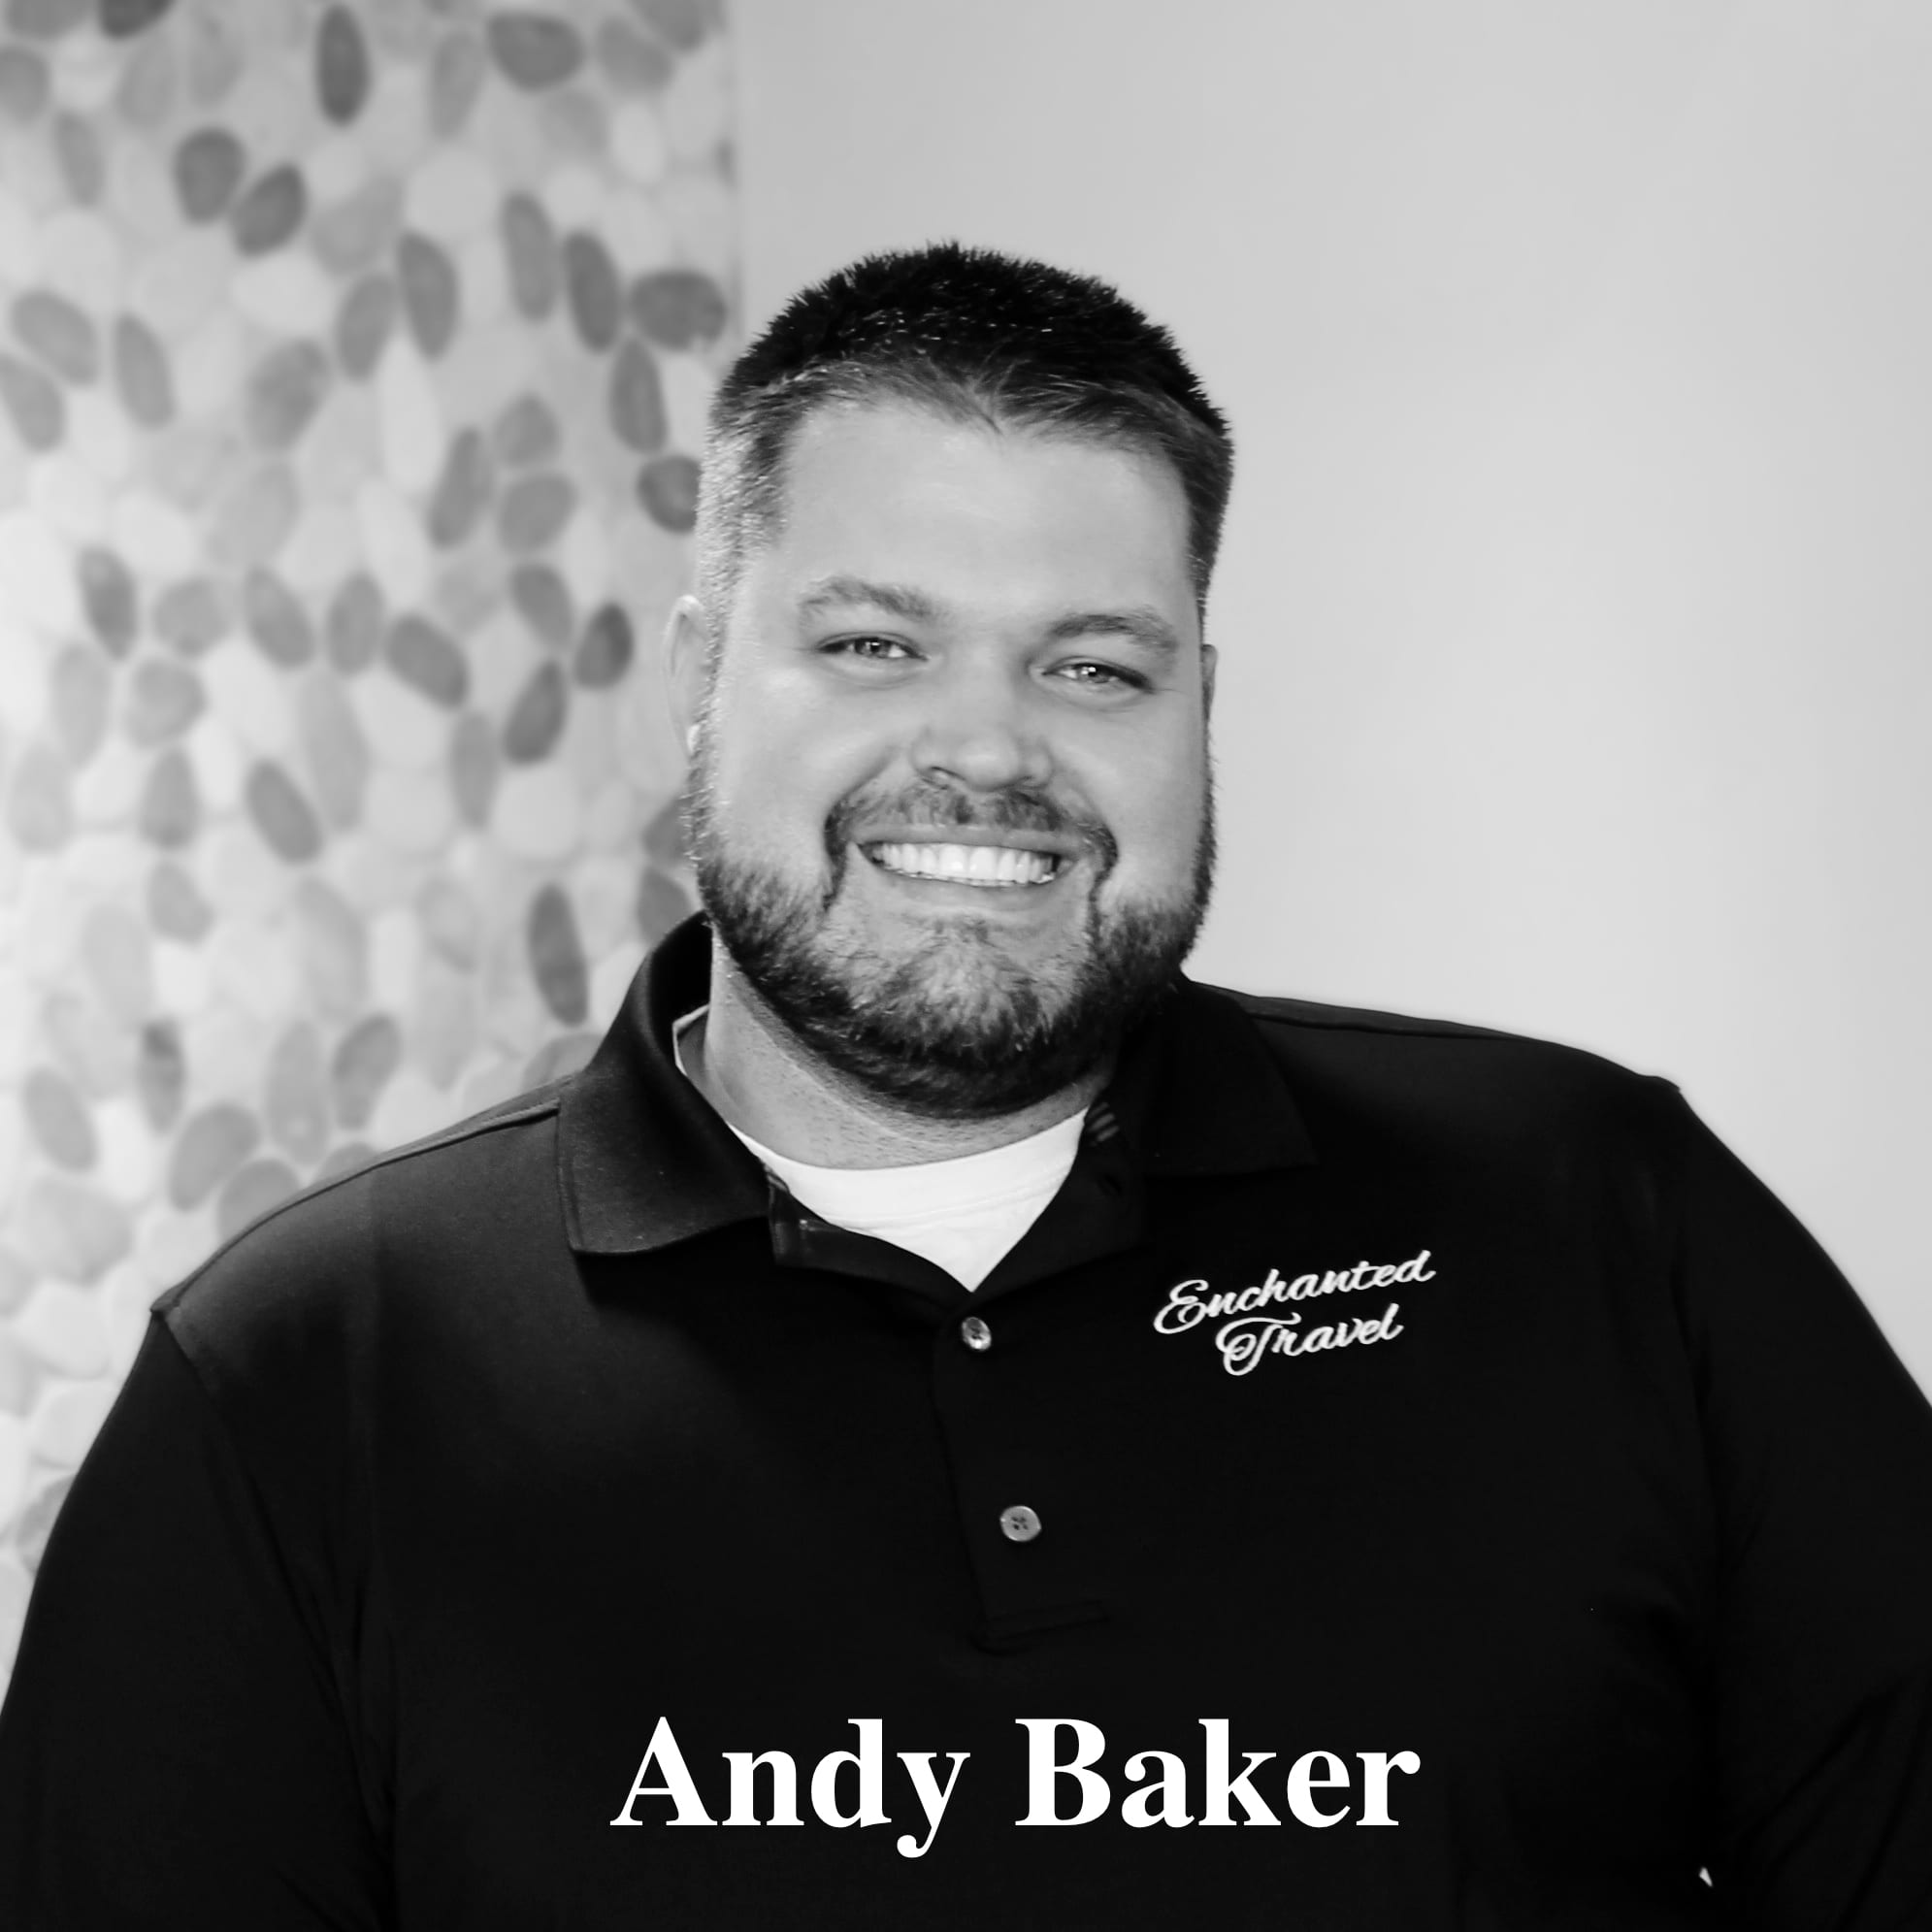 Andy Baker